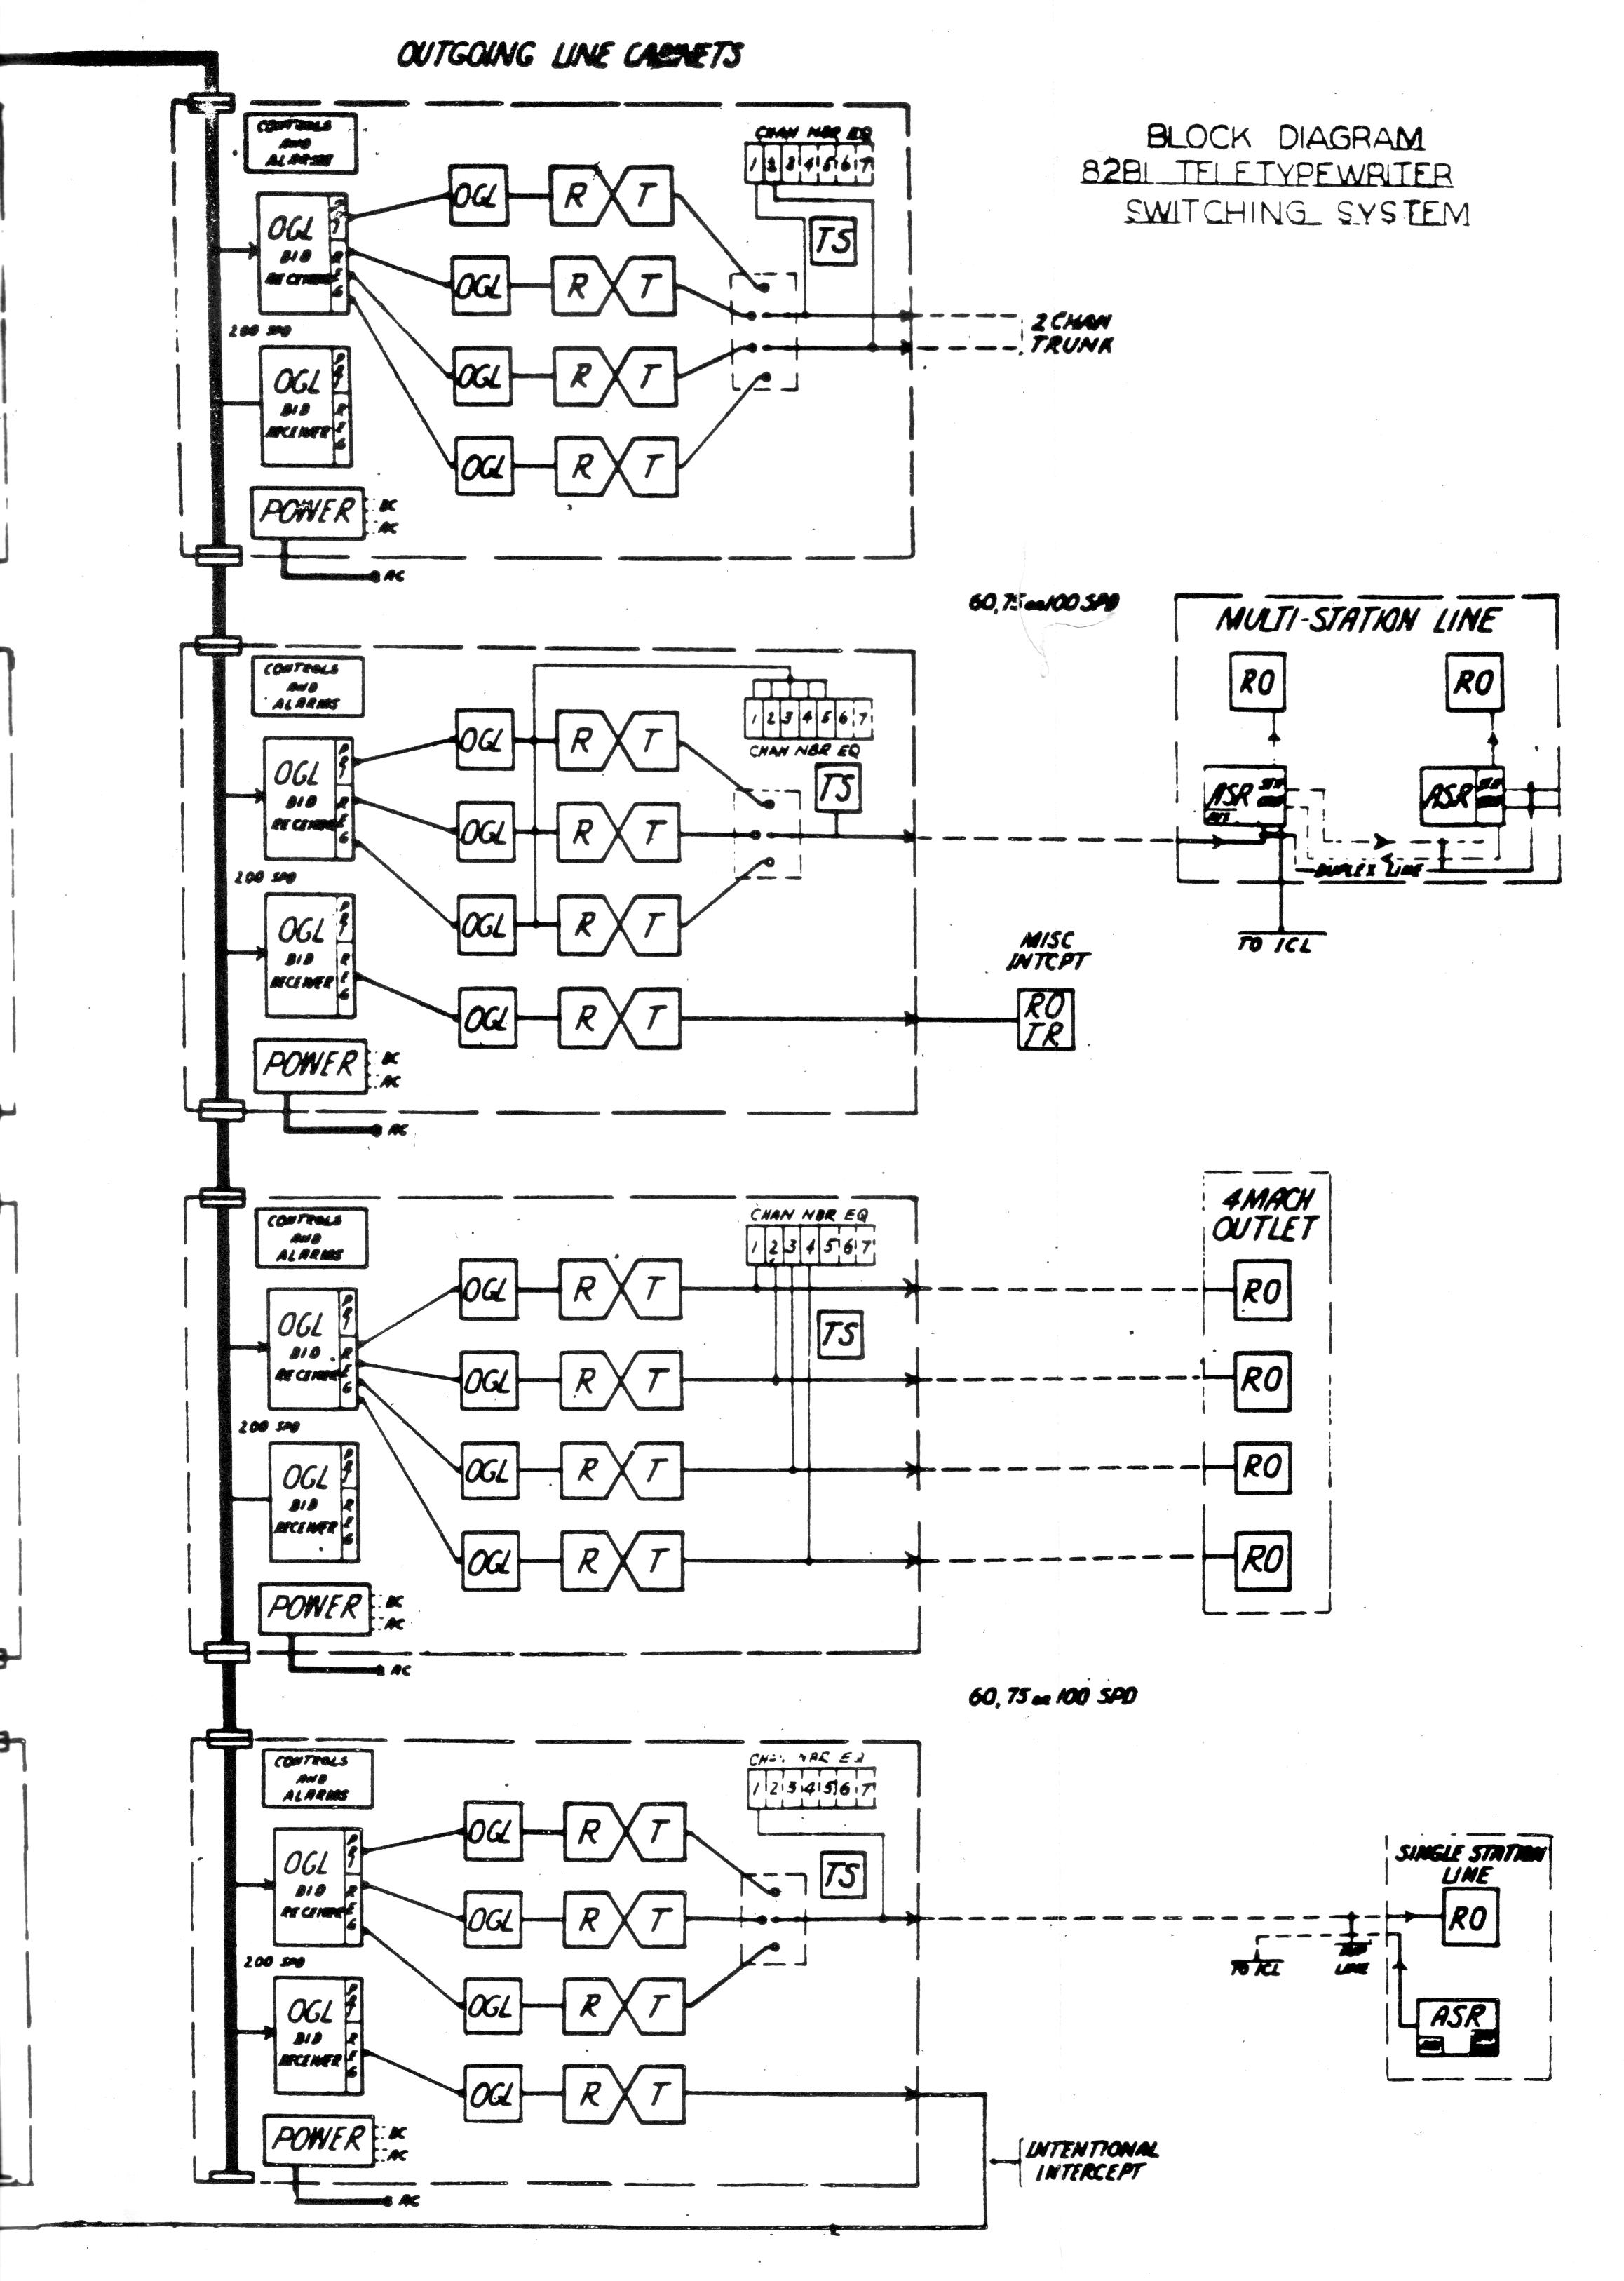 navy 82b1 switching center diagrams photos rh virhistory com 3-Way Switch Wiring Diagram Schematic Circuit Diagram